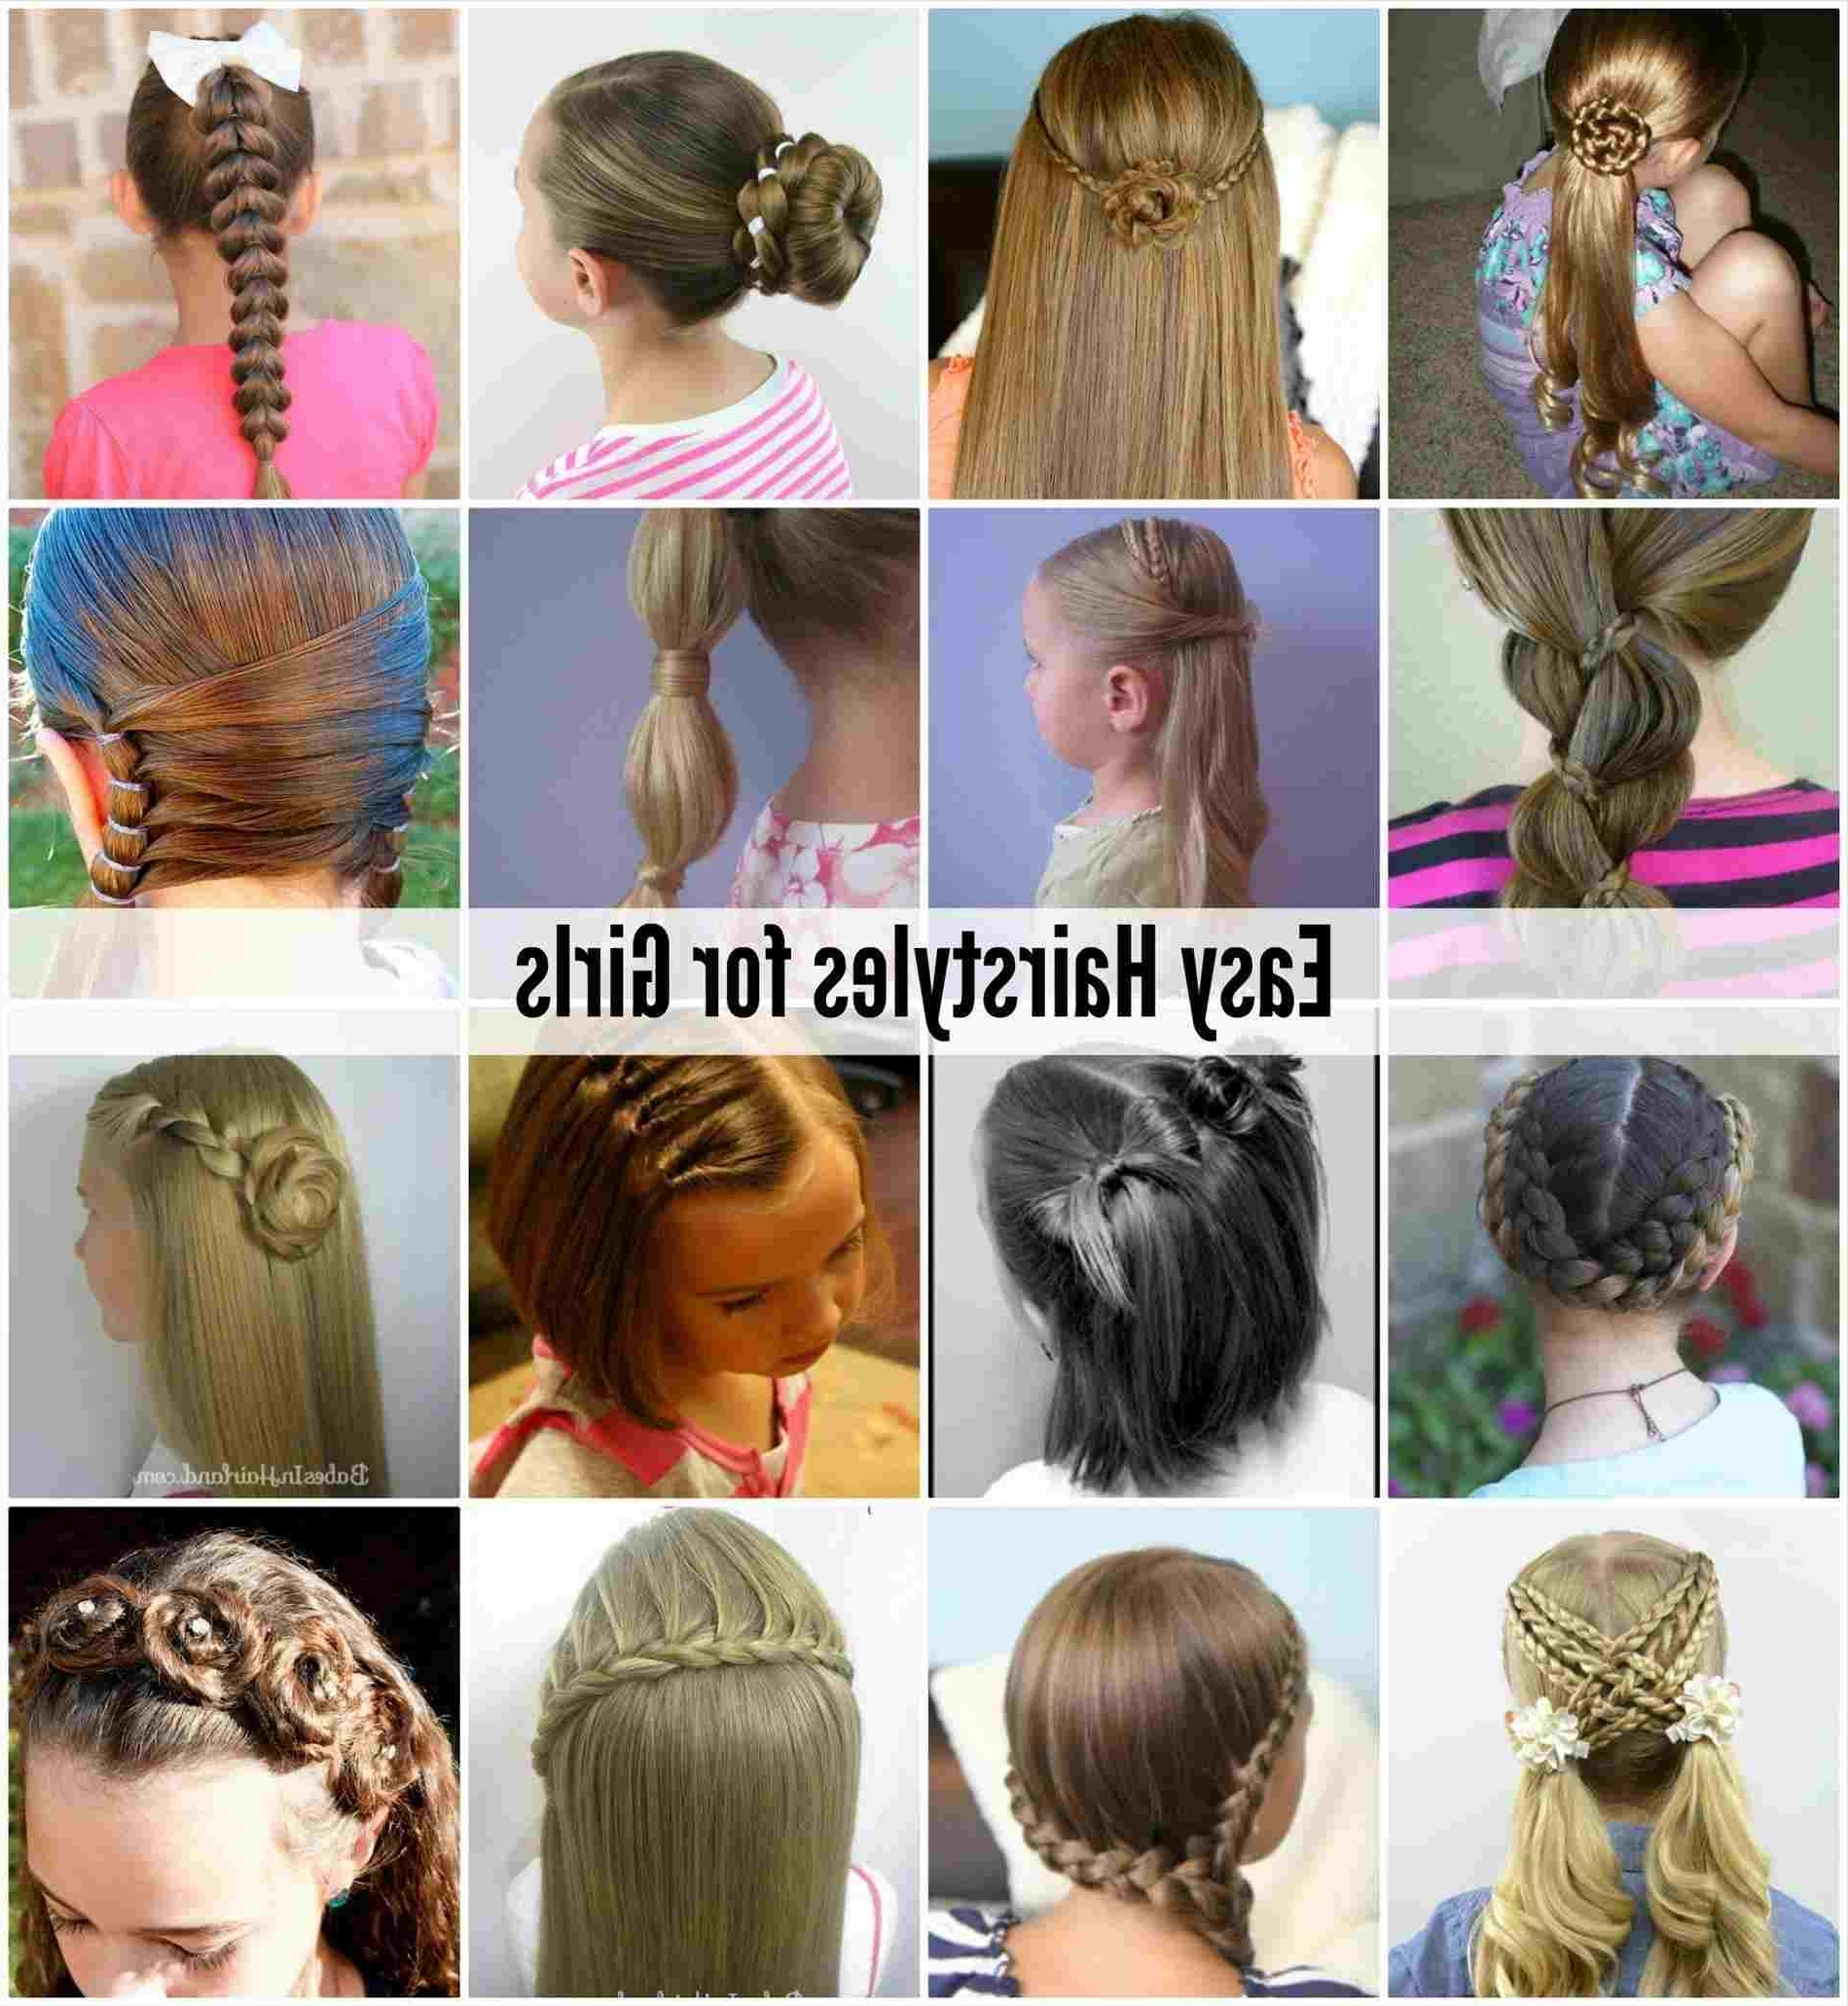 2018 Princess Ponytail Hairstyles Pertaining To Simple Hairstyle For Girls Stepstep Ponytail Hairstyles For (View 5 of 20)